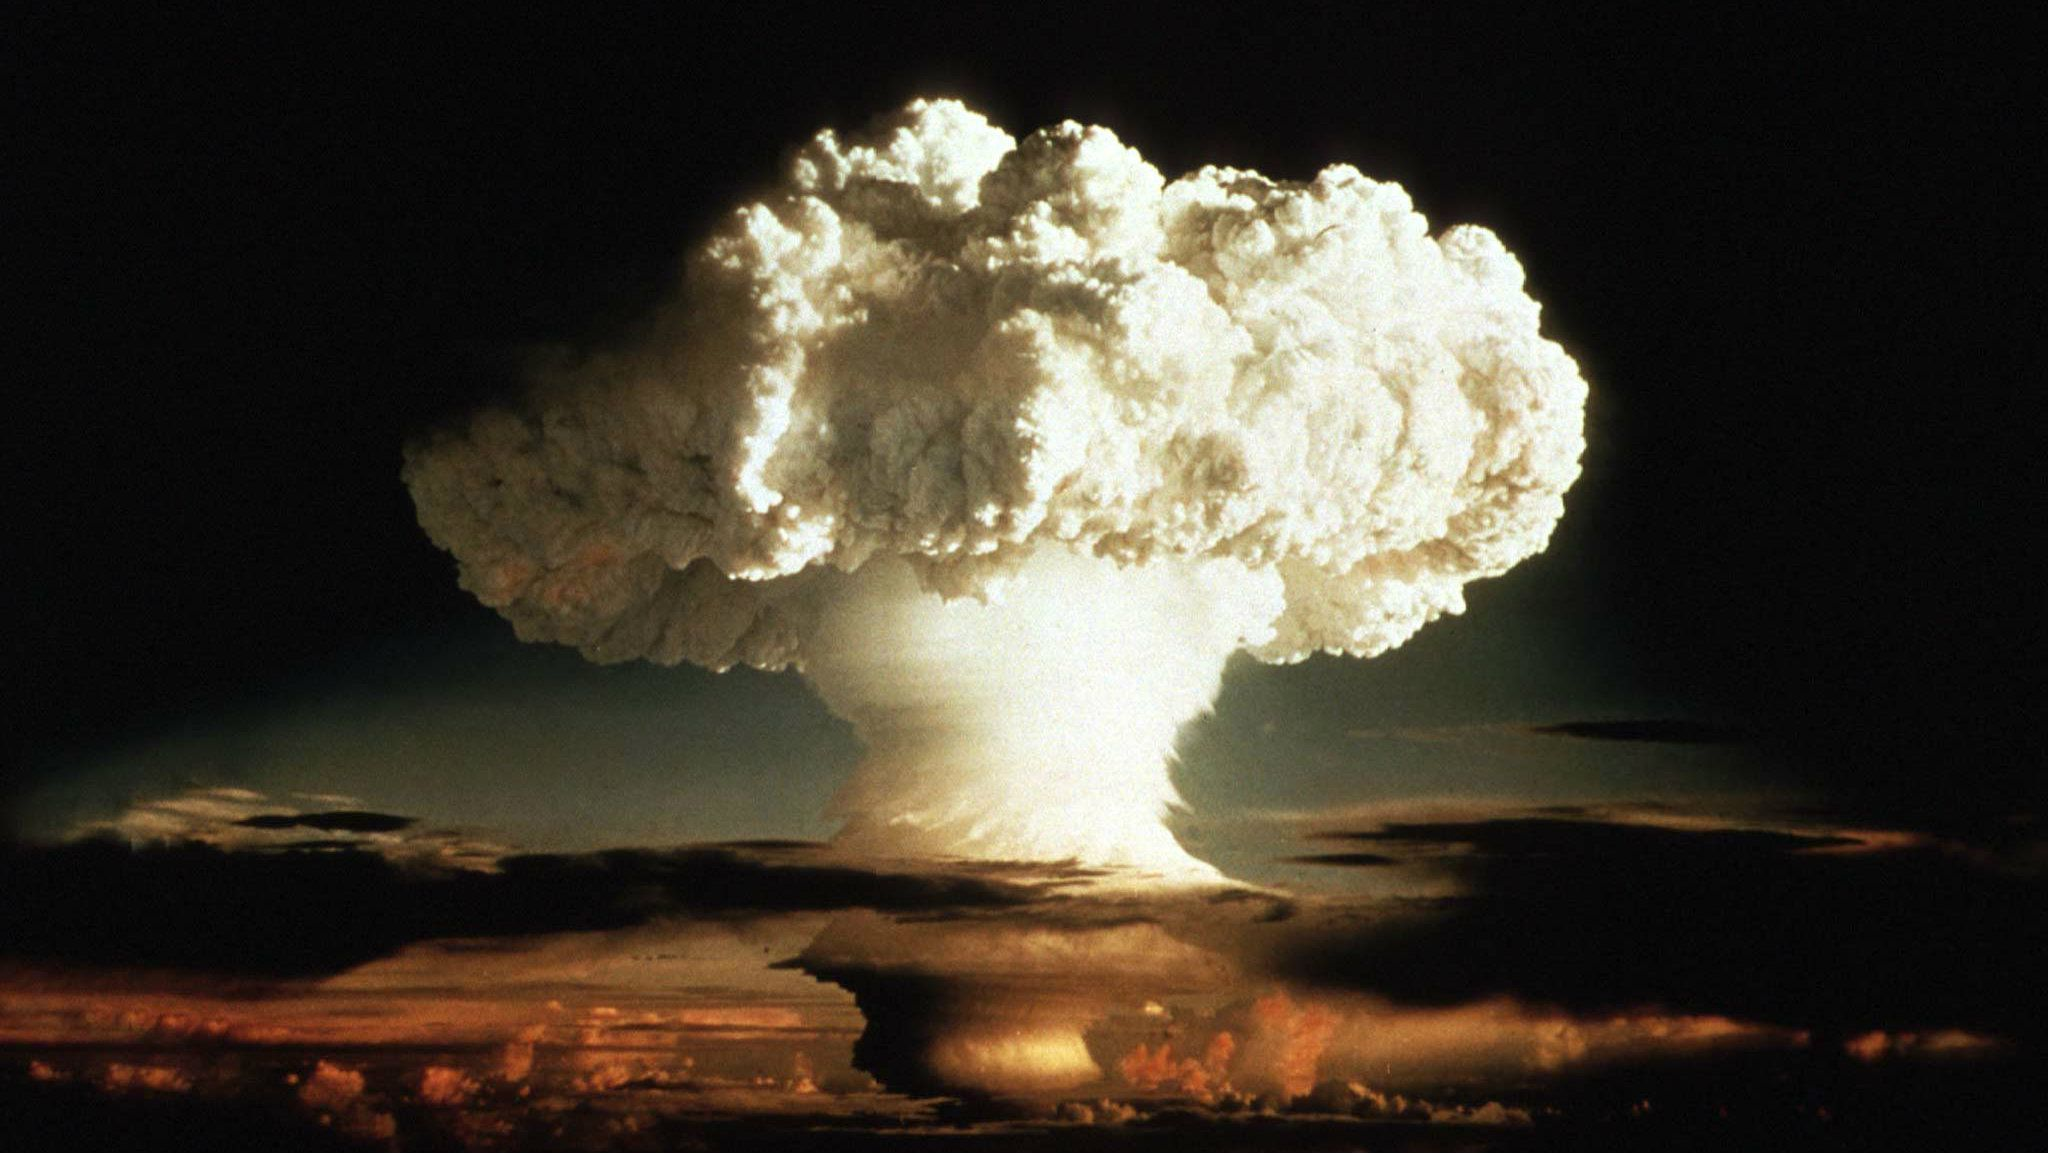 """- 1952 FILE PHOTO - The mushroom cloud of the first test of a hydrogen bomb, """"Ivy Mike"""", as photographed on Enewetak, an atoll in the Pacific Ocean, in 1952, by a member of the United States Air Force's Lookout Mountain 1352d Photographic Squadron. The top secret film studio, then located in Hollywood, California, produced thousands of classified films for the Department of Defence and the Atomic Energy Commission beginning in 1947. A 50th anniversary tribute to these """"Atomic Cinematographers"""" and their work is planned for October 22 in Hollywood. BEST QUALITY AVAILABLE"""